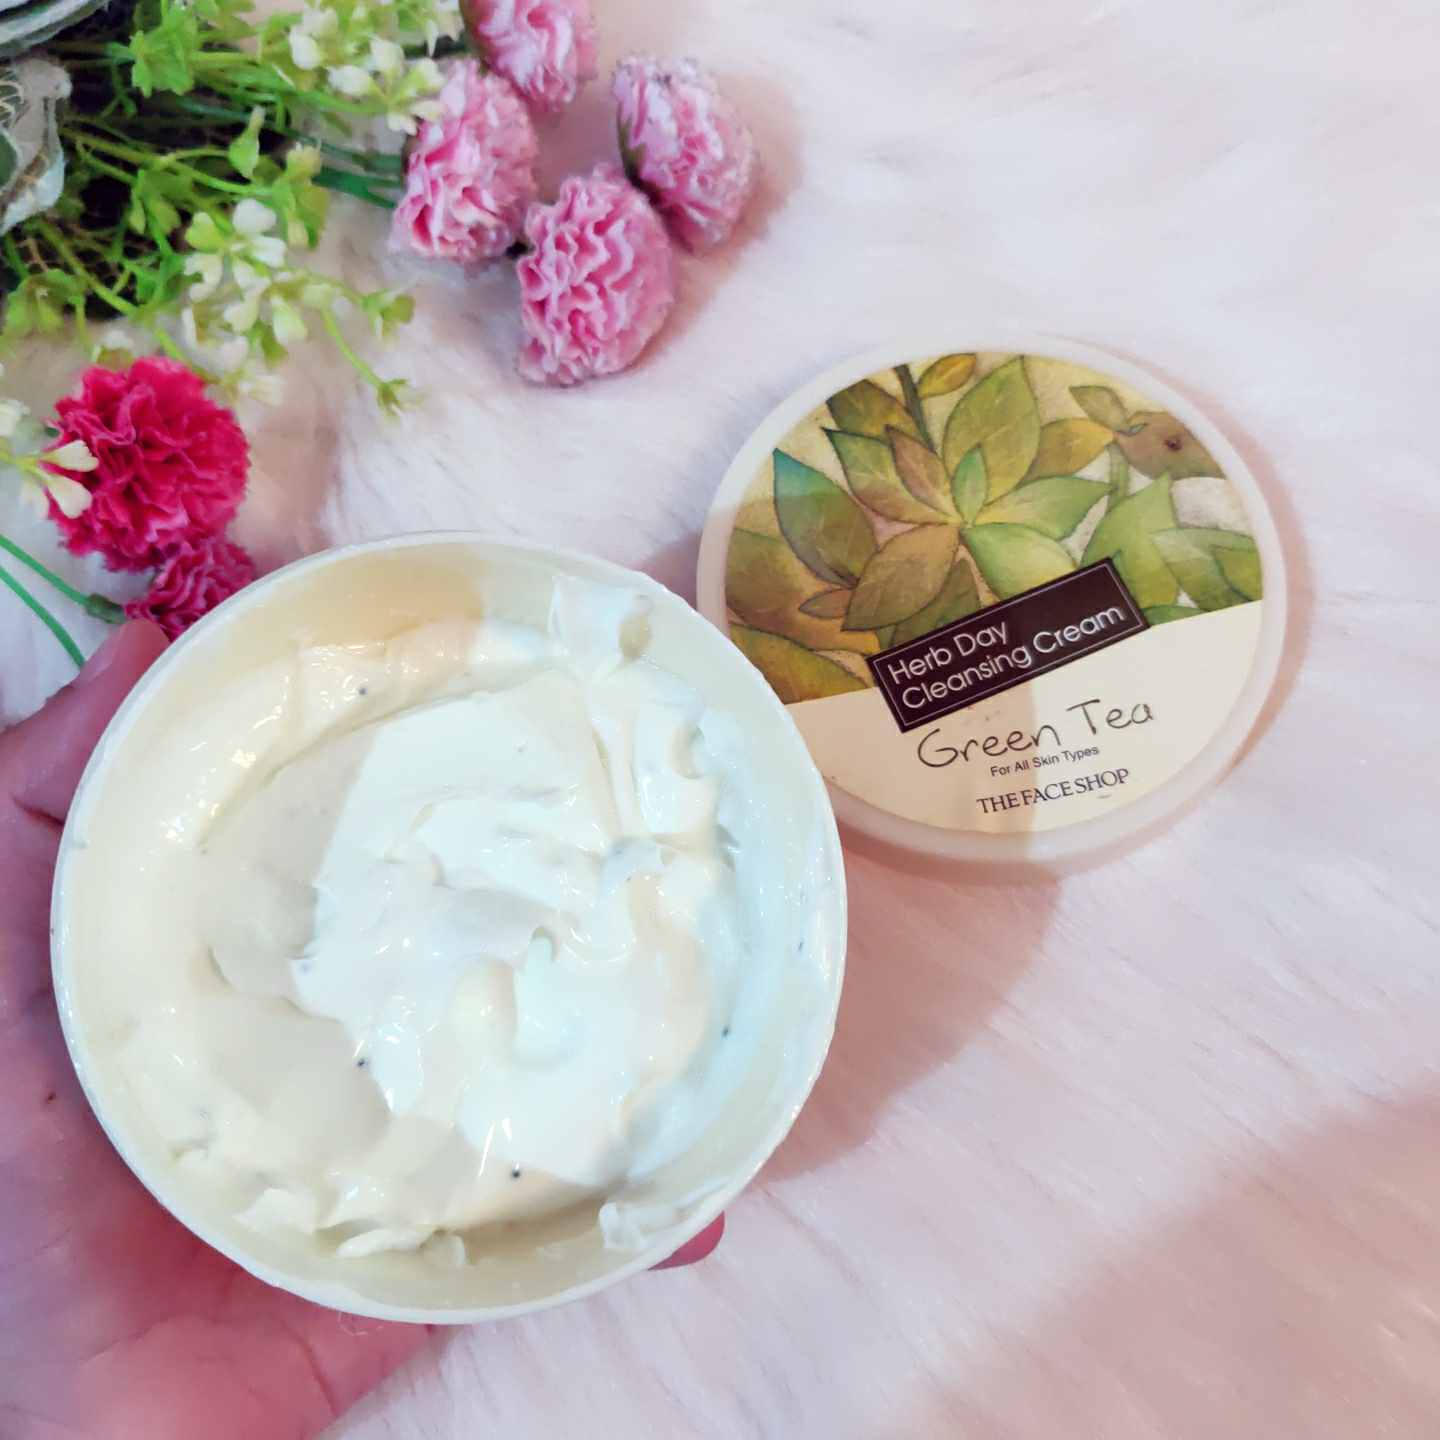 The Face shop herb day cleansing cream